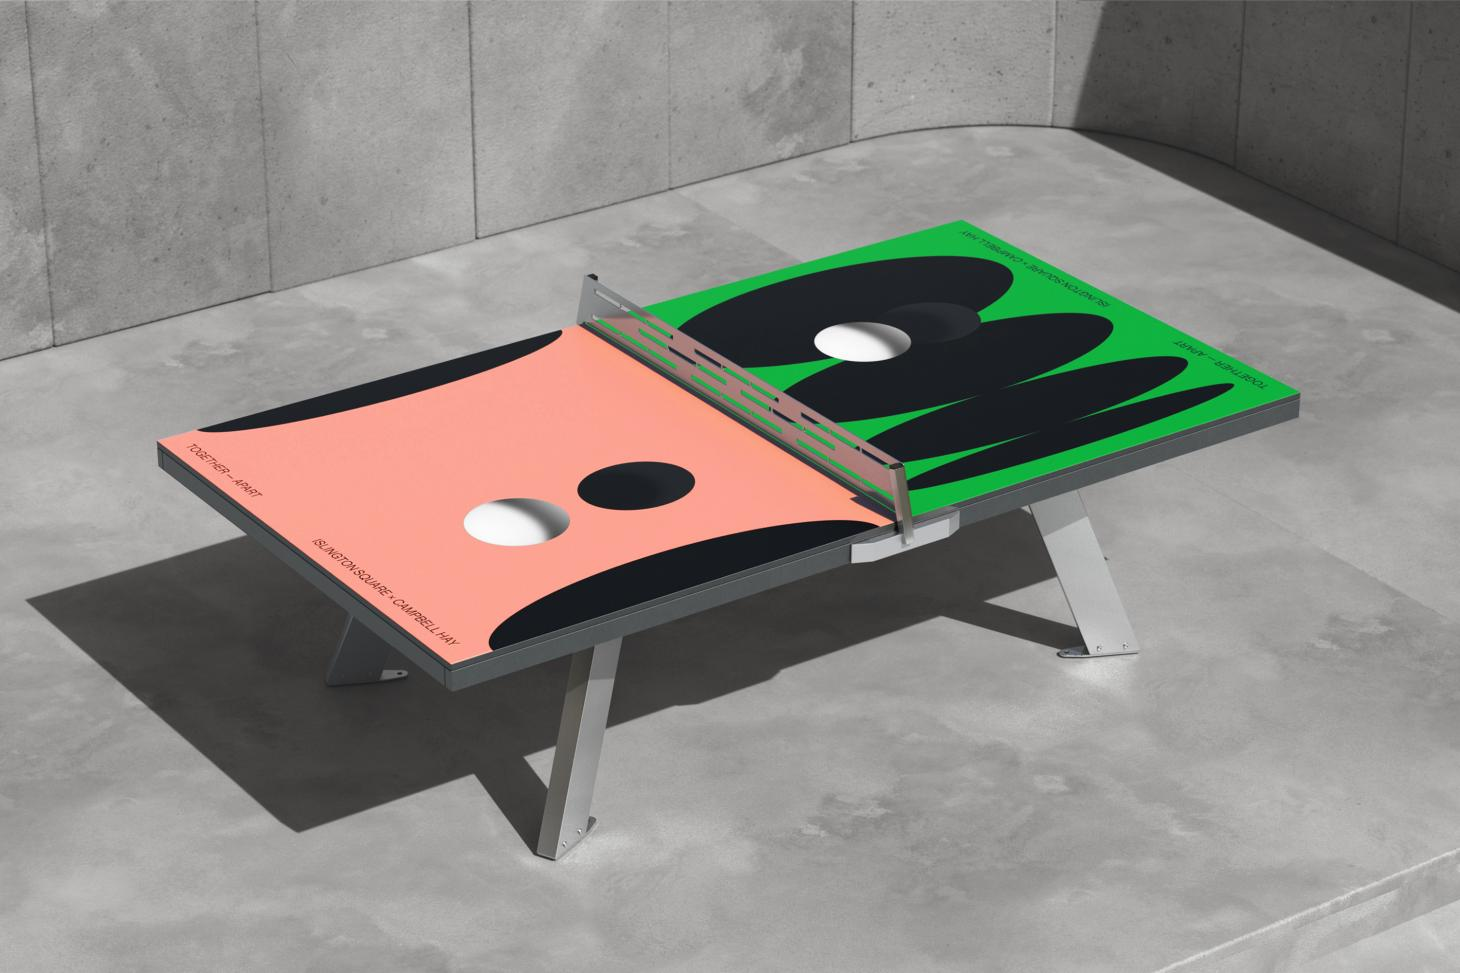 A colourful ping pong table